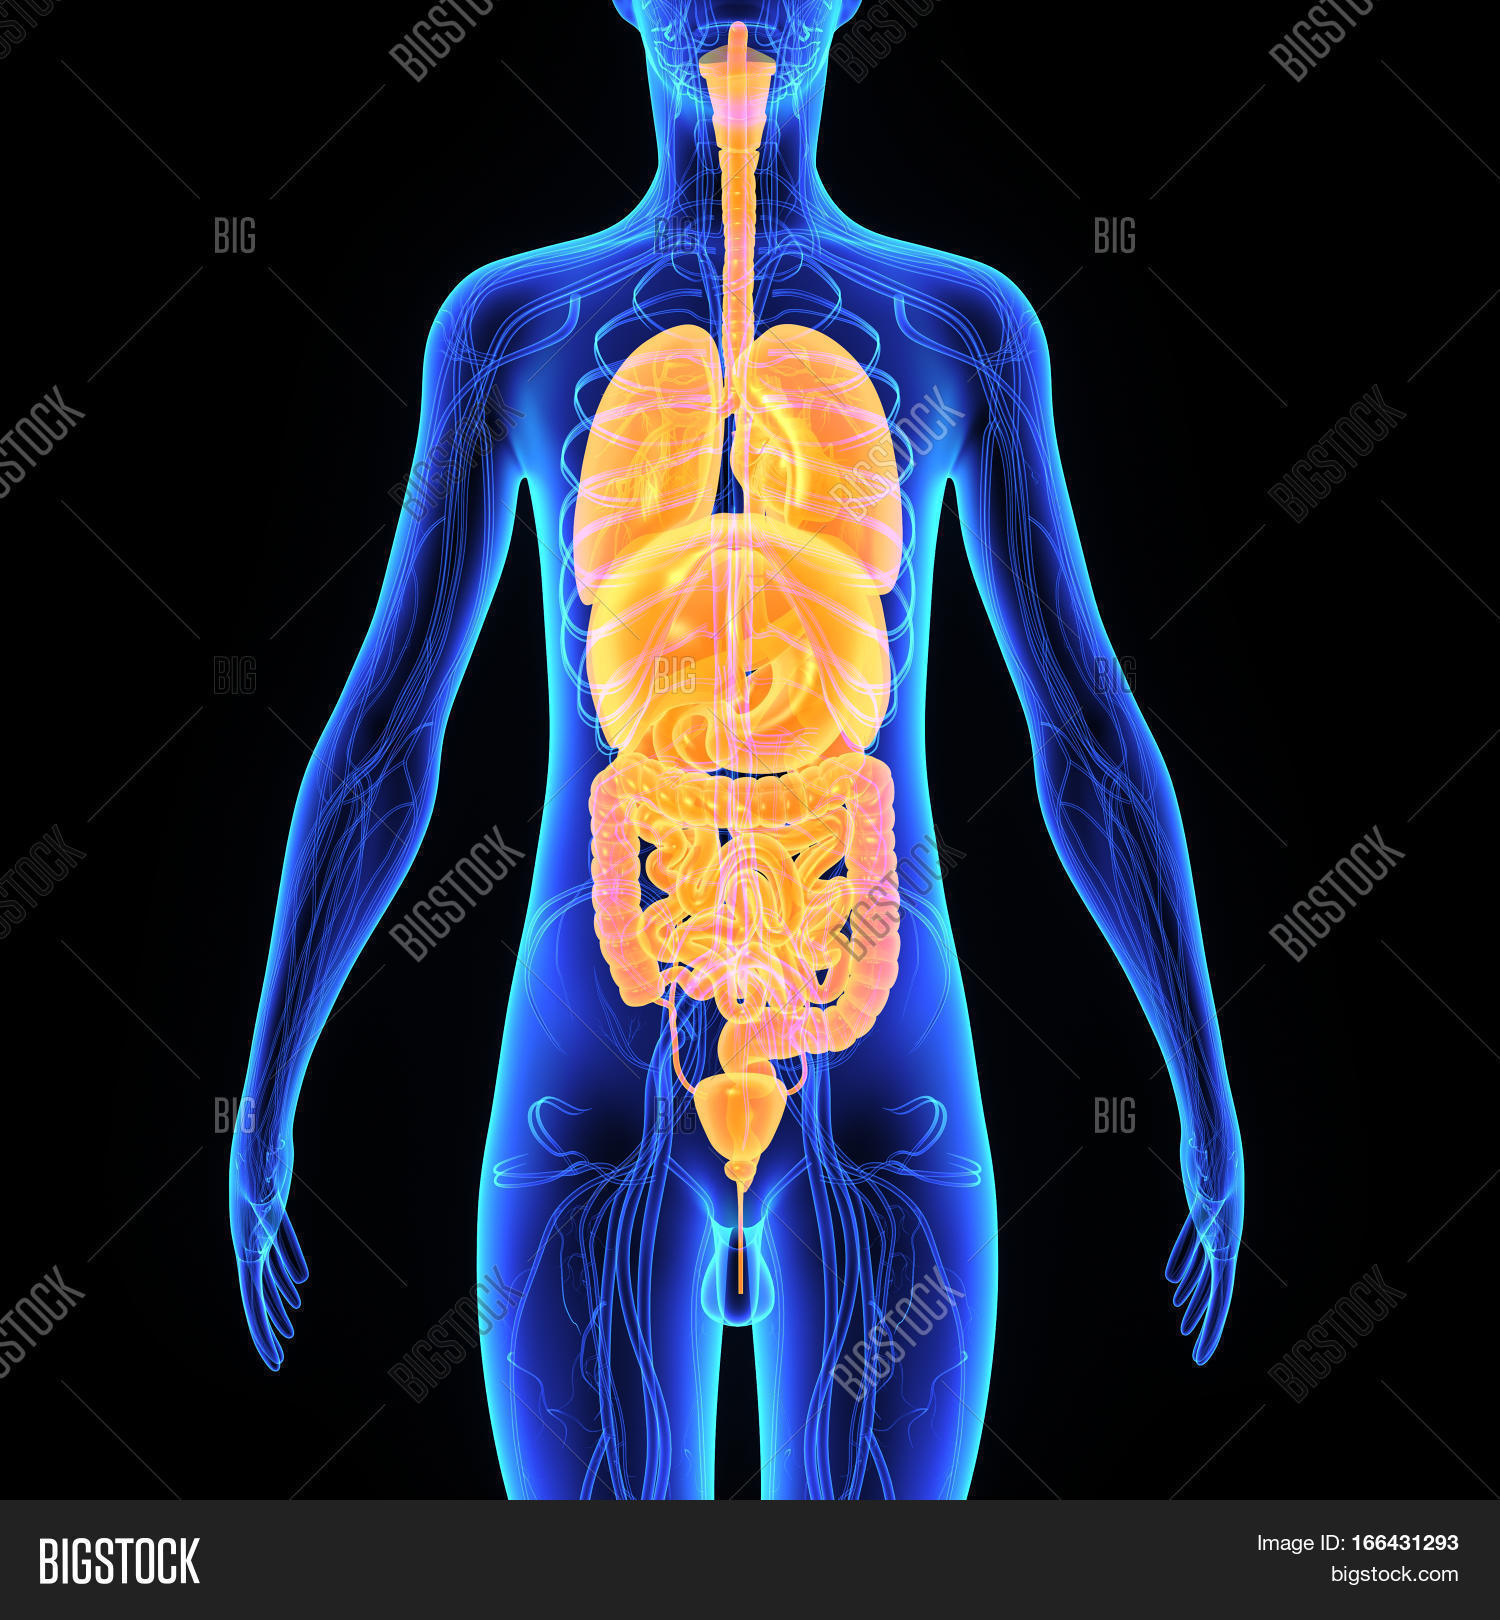 Two More Organs Image & Photo (Free Trial) | Bigstock